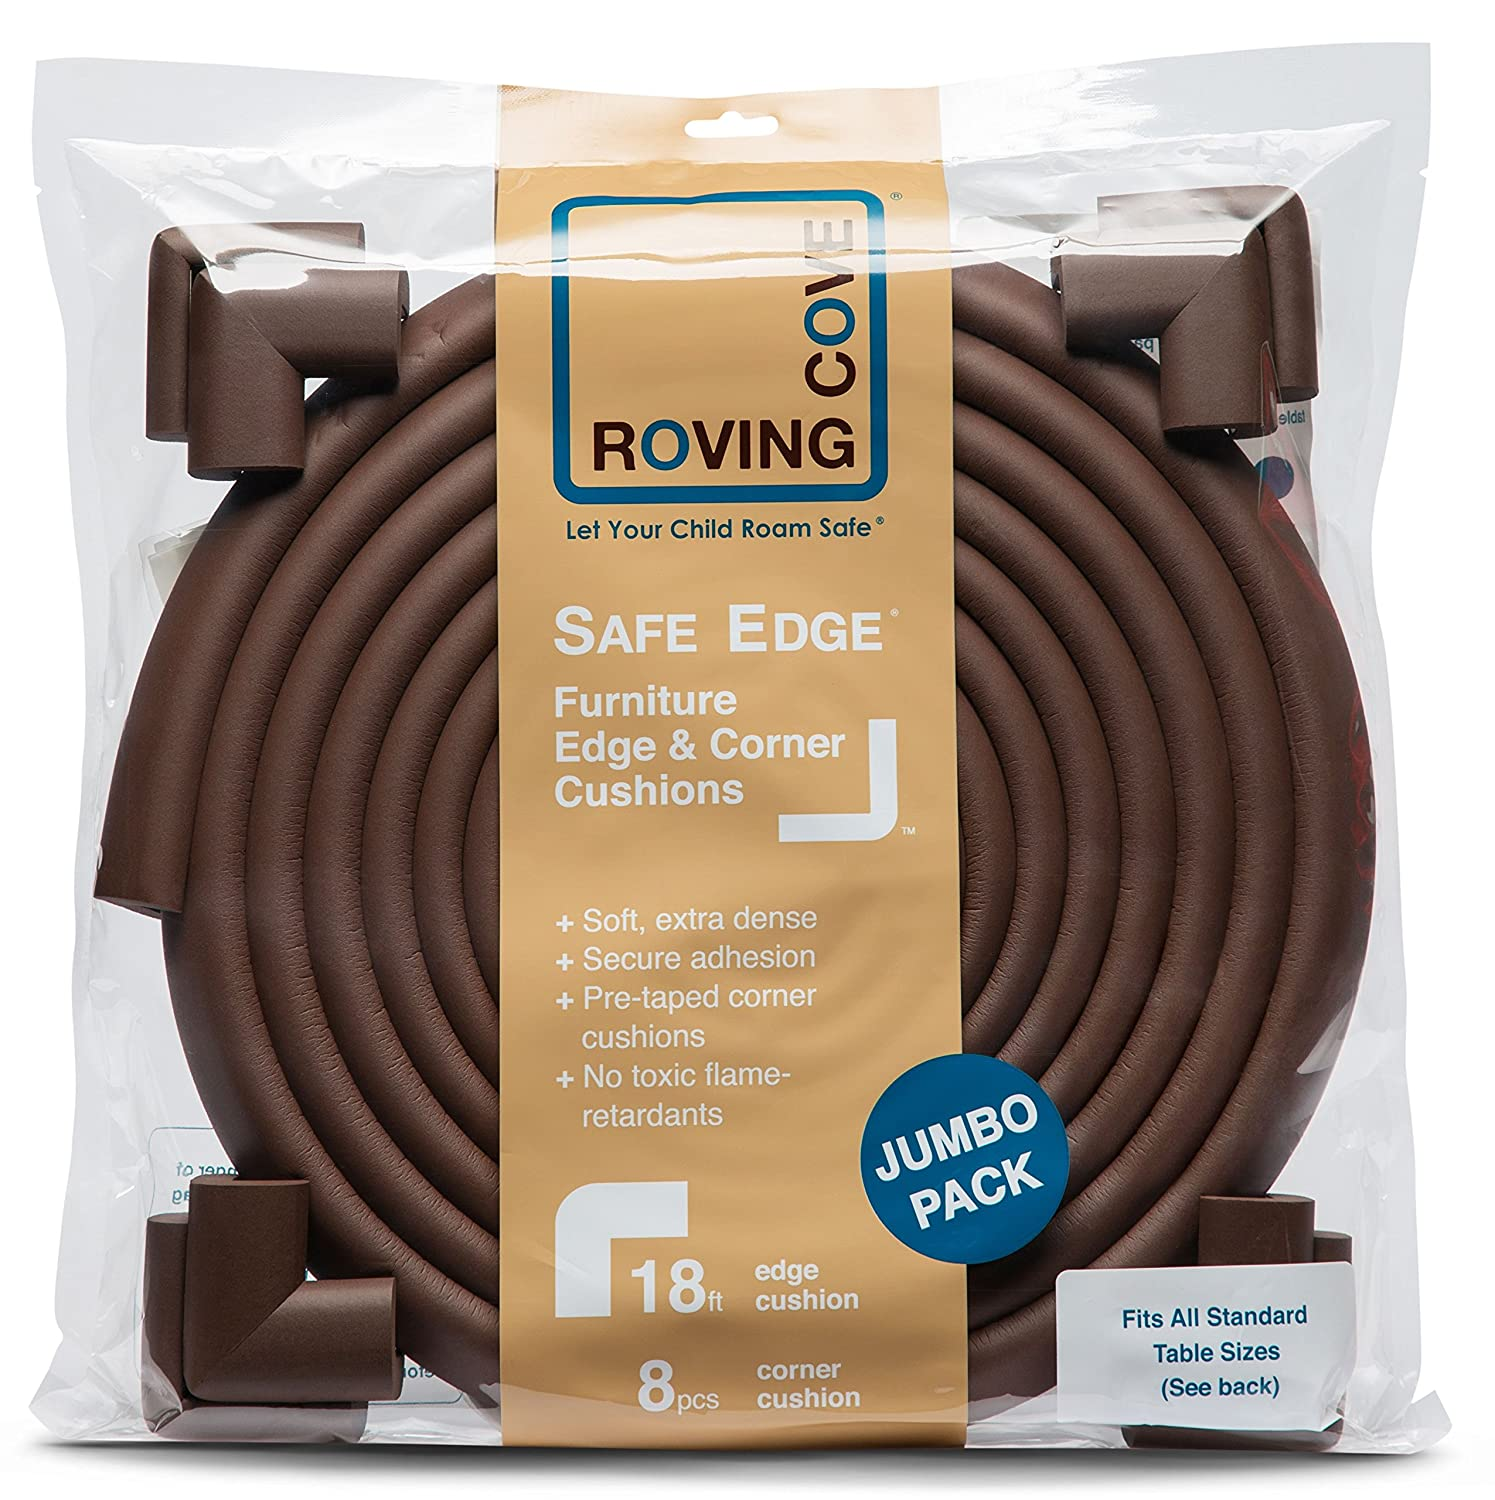 Amazon Roving Cove 20 4 ft [18ft Edge 8 Corners] Safe Edge